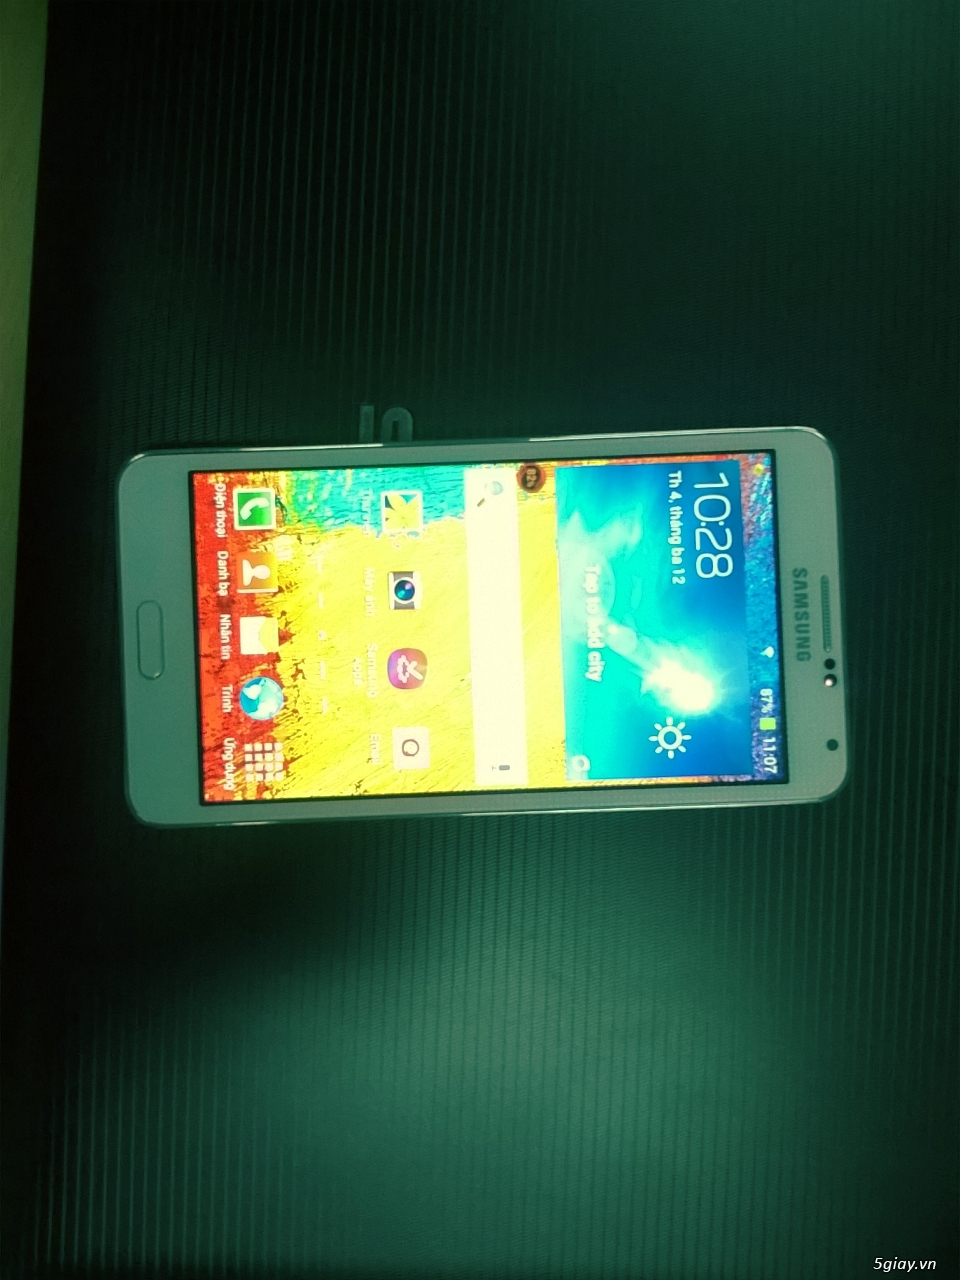 Samsung galaxy note 3 - 11457